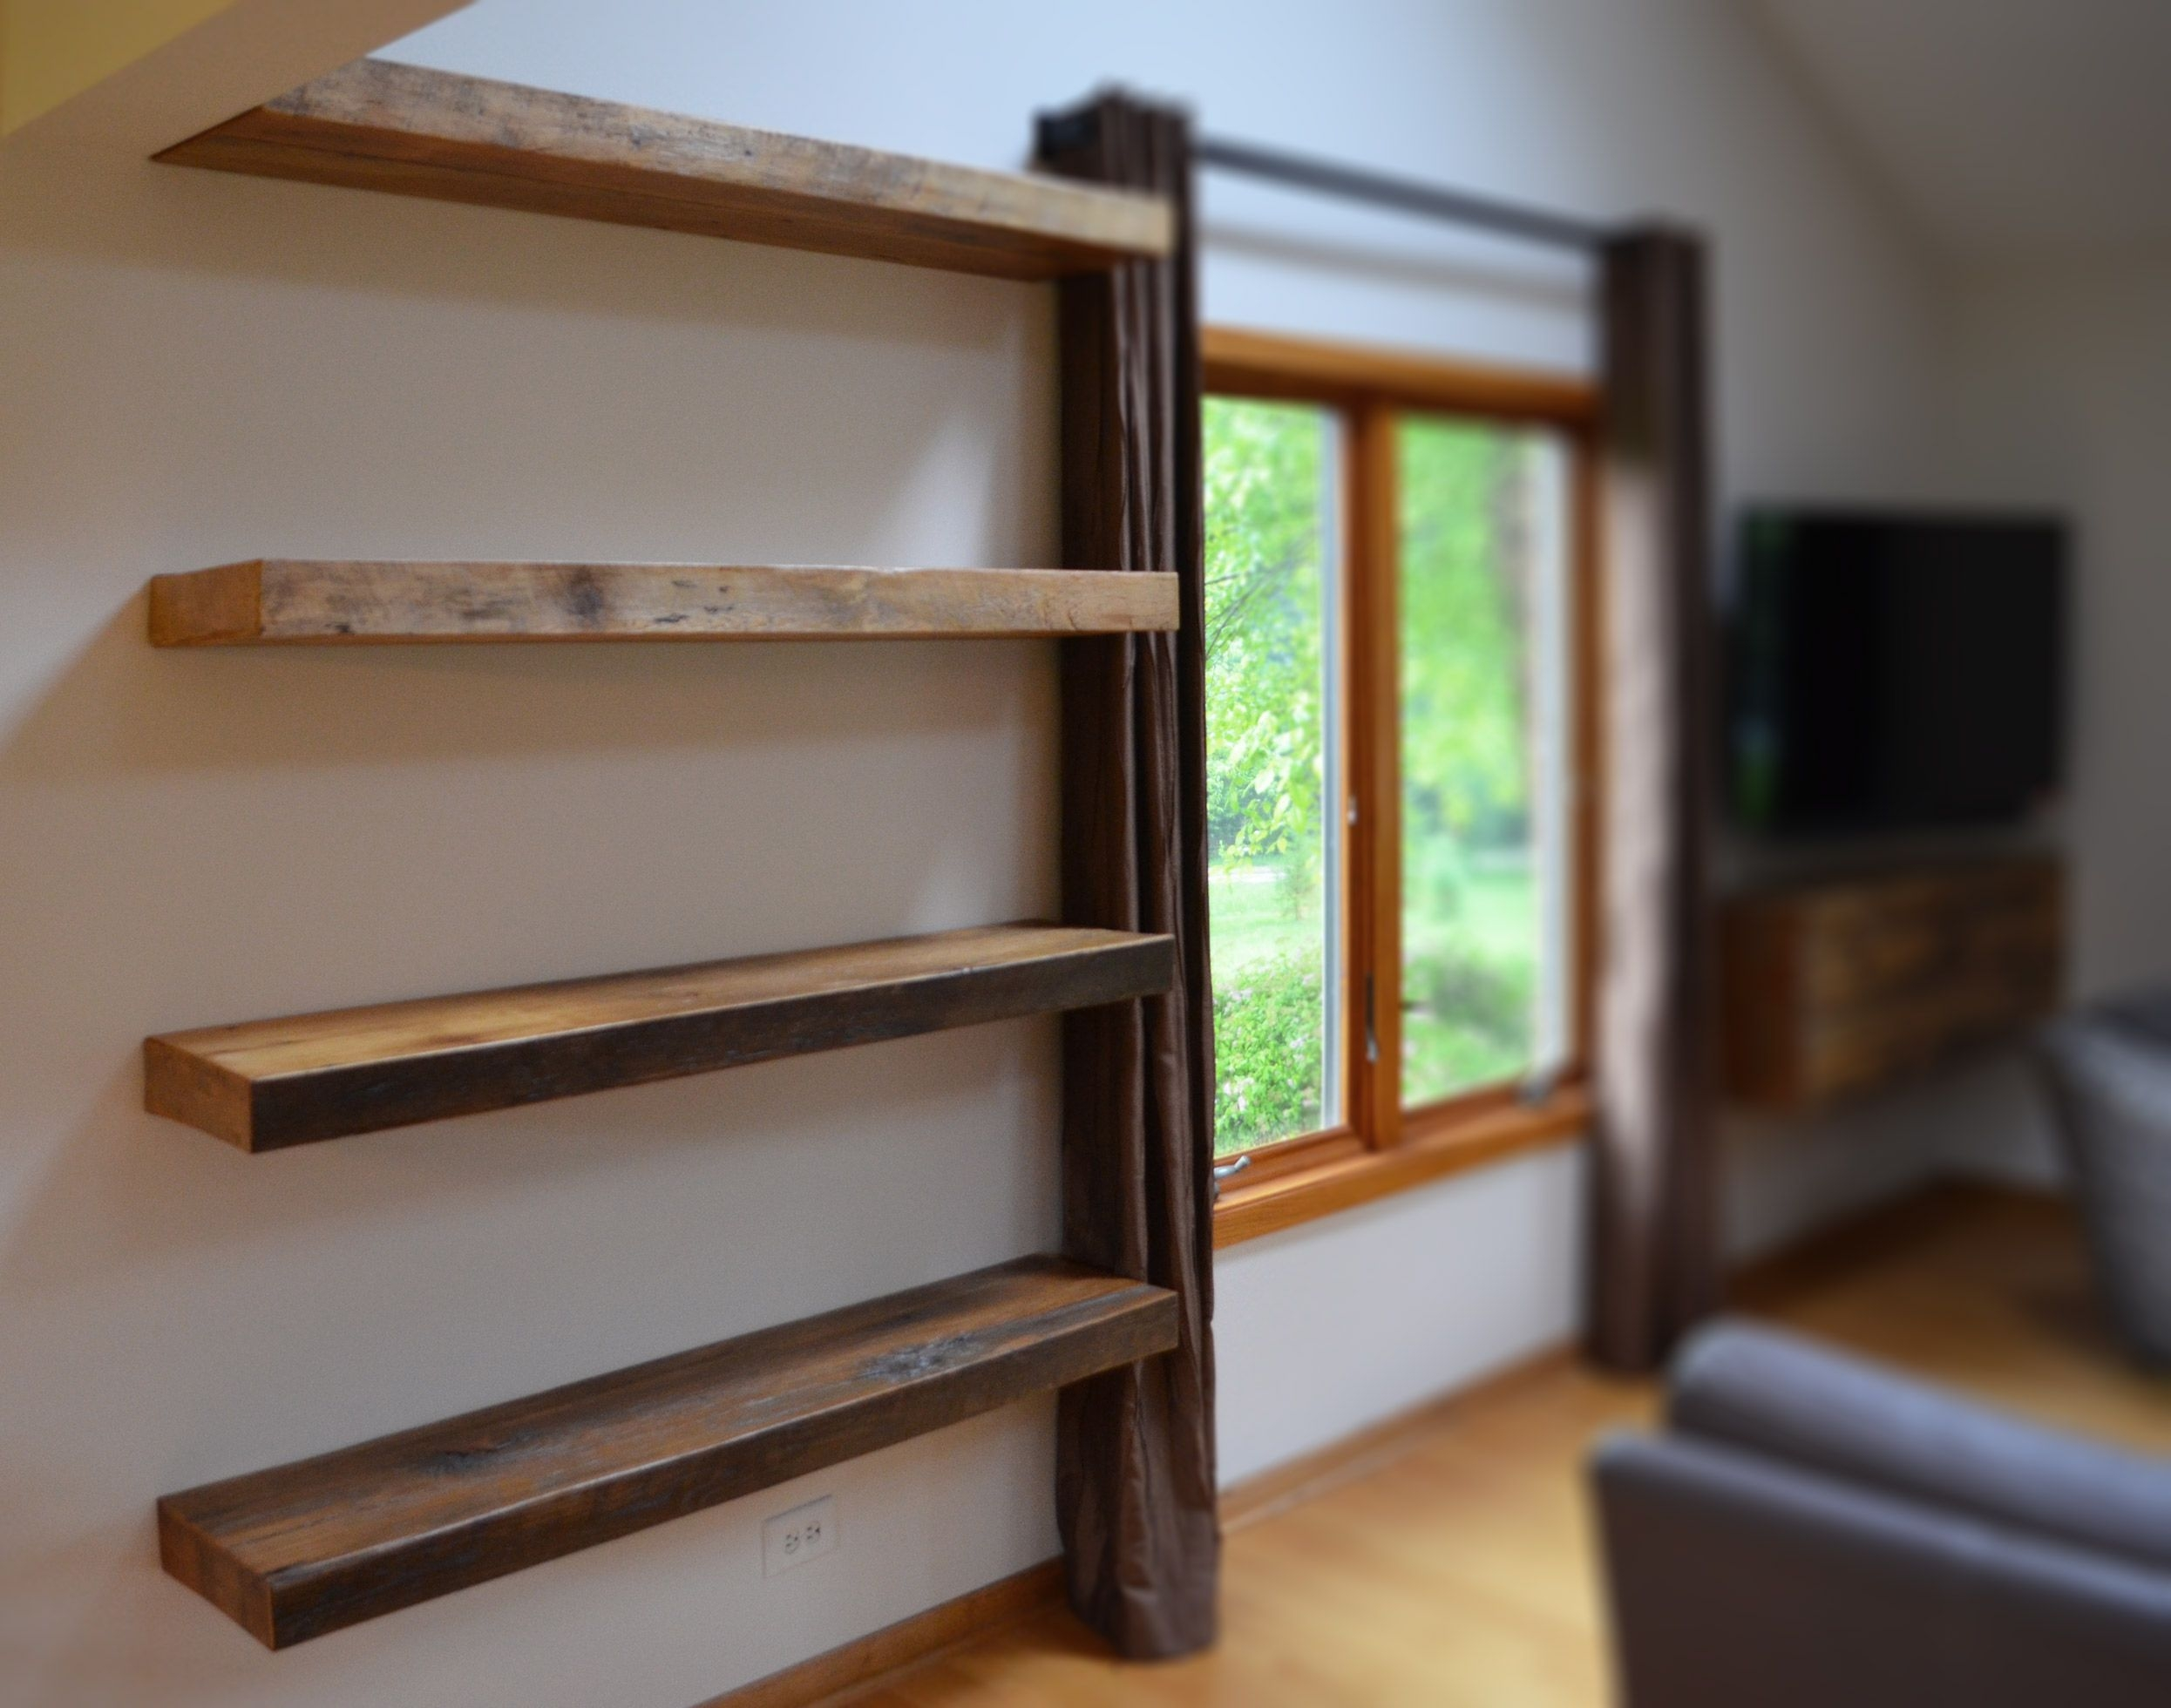 Hand Made Rustic Floating Shelves Abodeacious Custommade Inside Custom Floating Shelves (View 10 of 12)